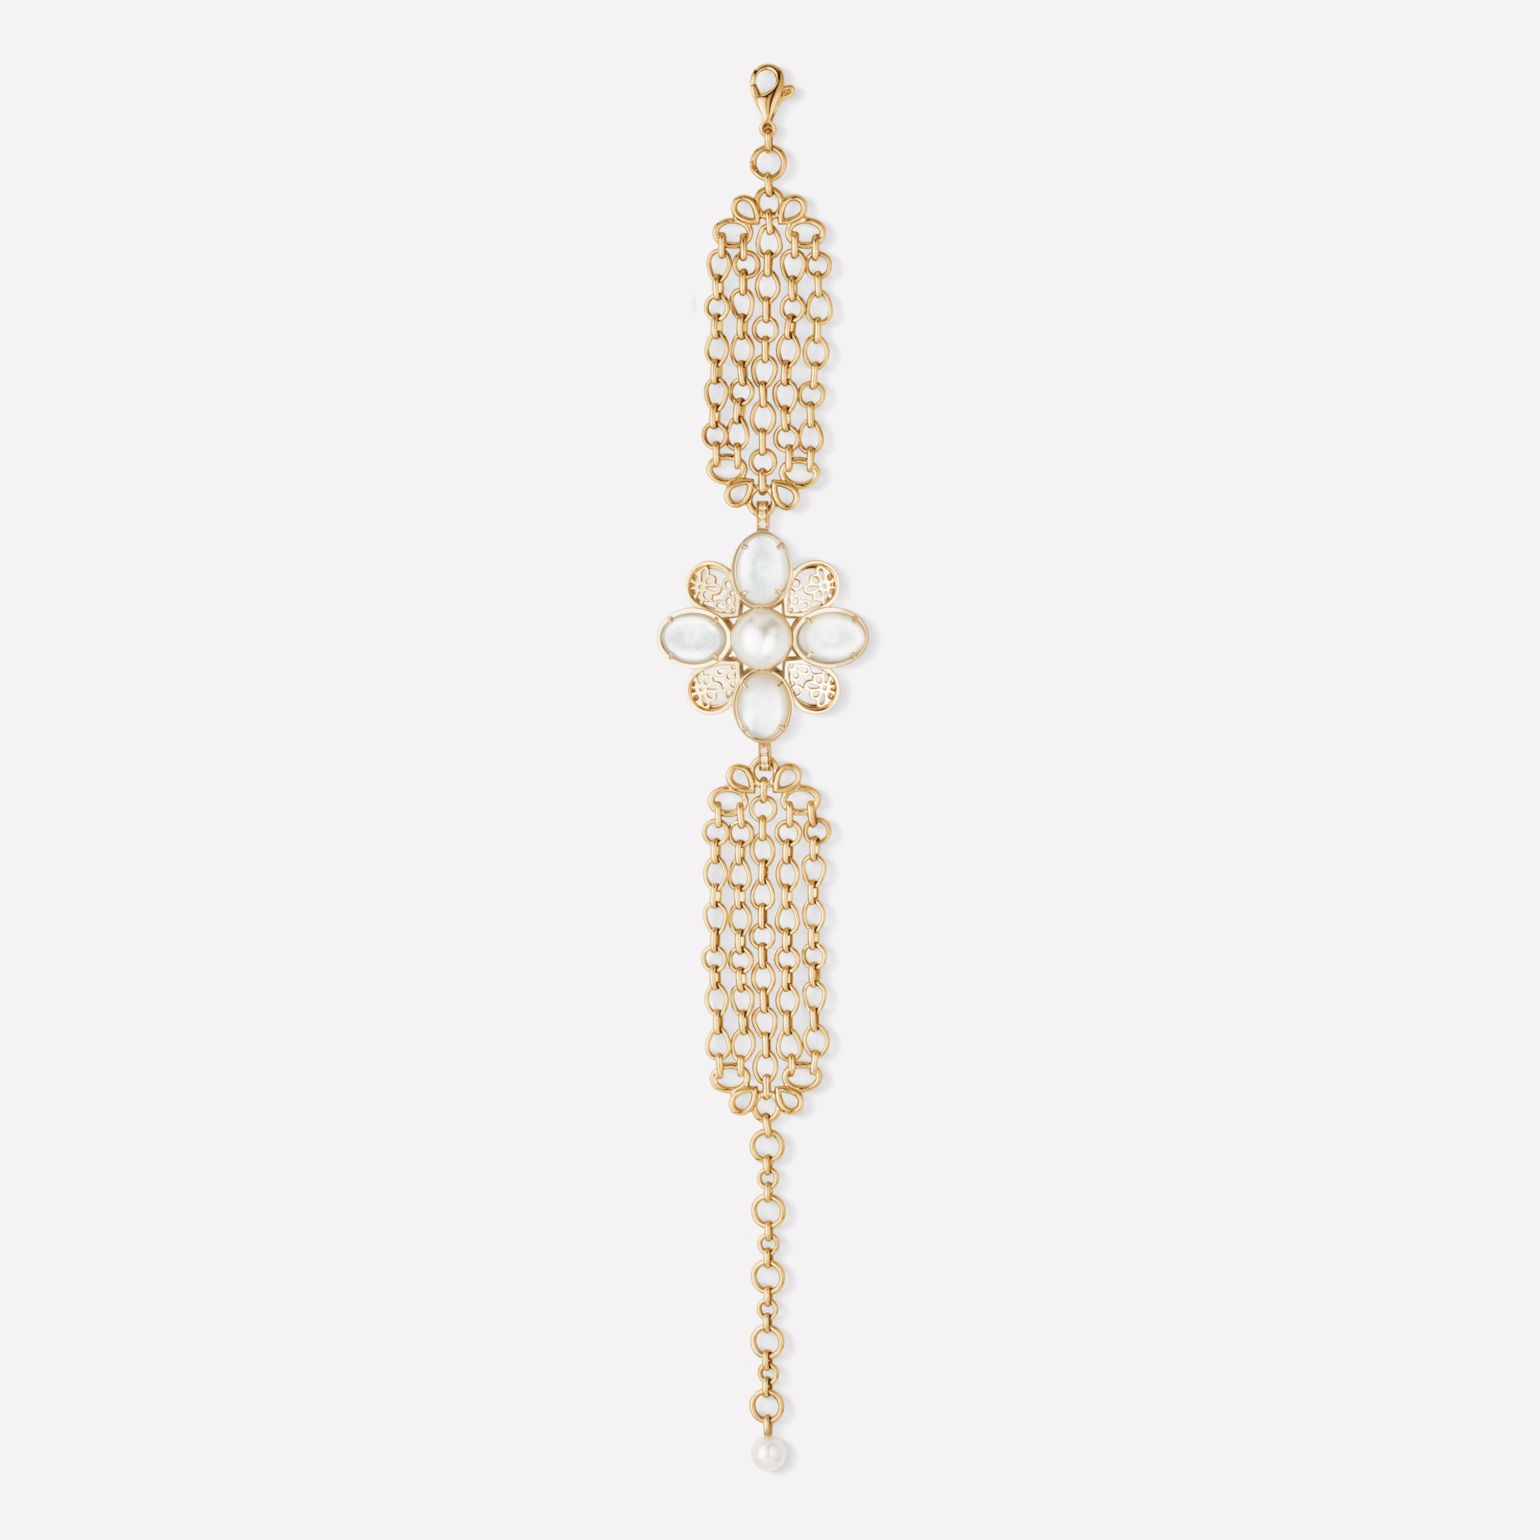 Baroque bracelet Perles Chaînes bracelet, in 18K yellow gold, diamonds, cultured pearls and gemstones